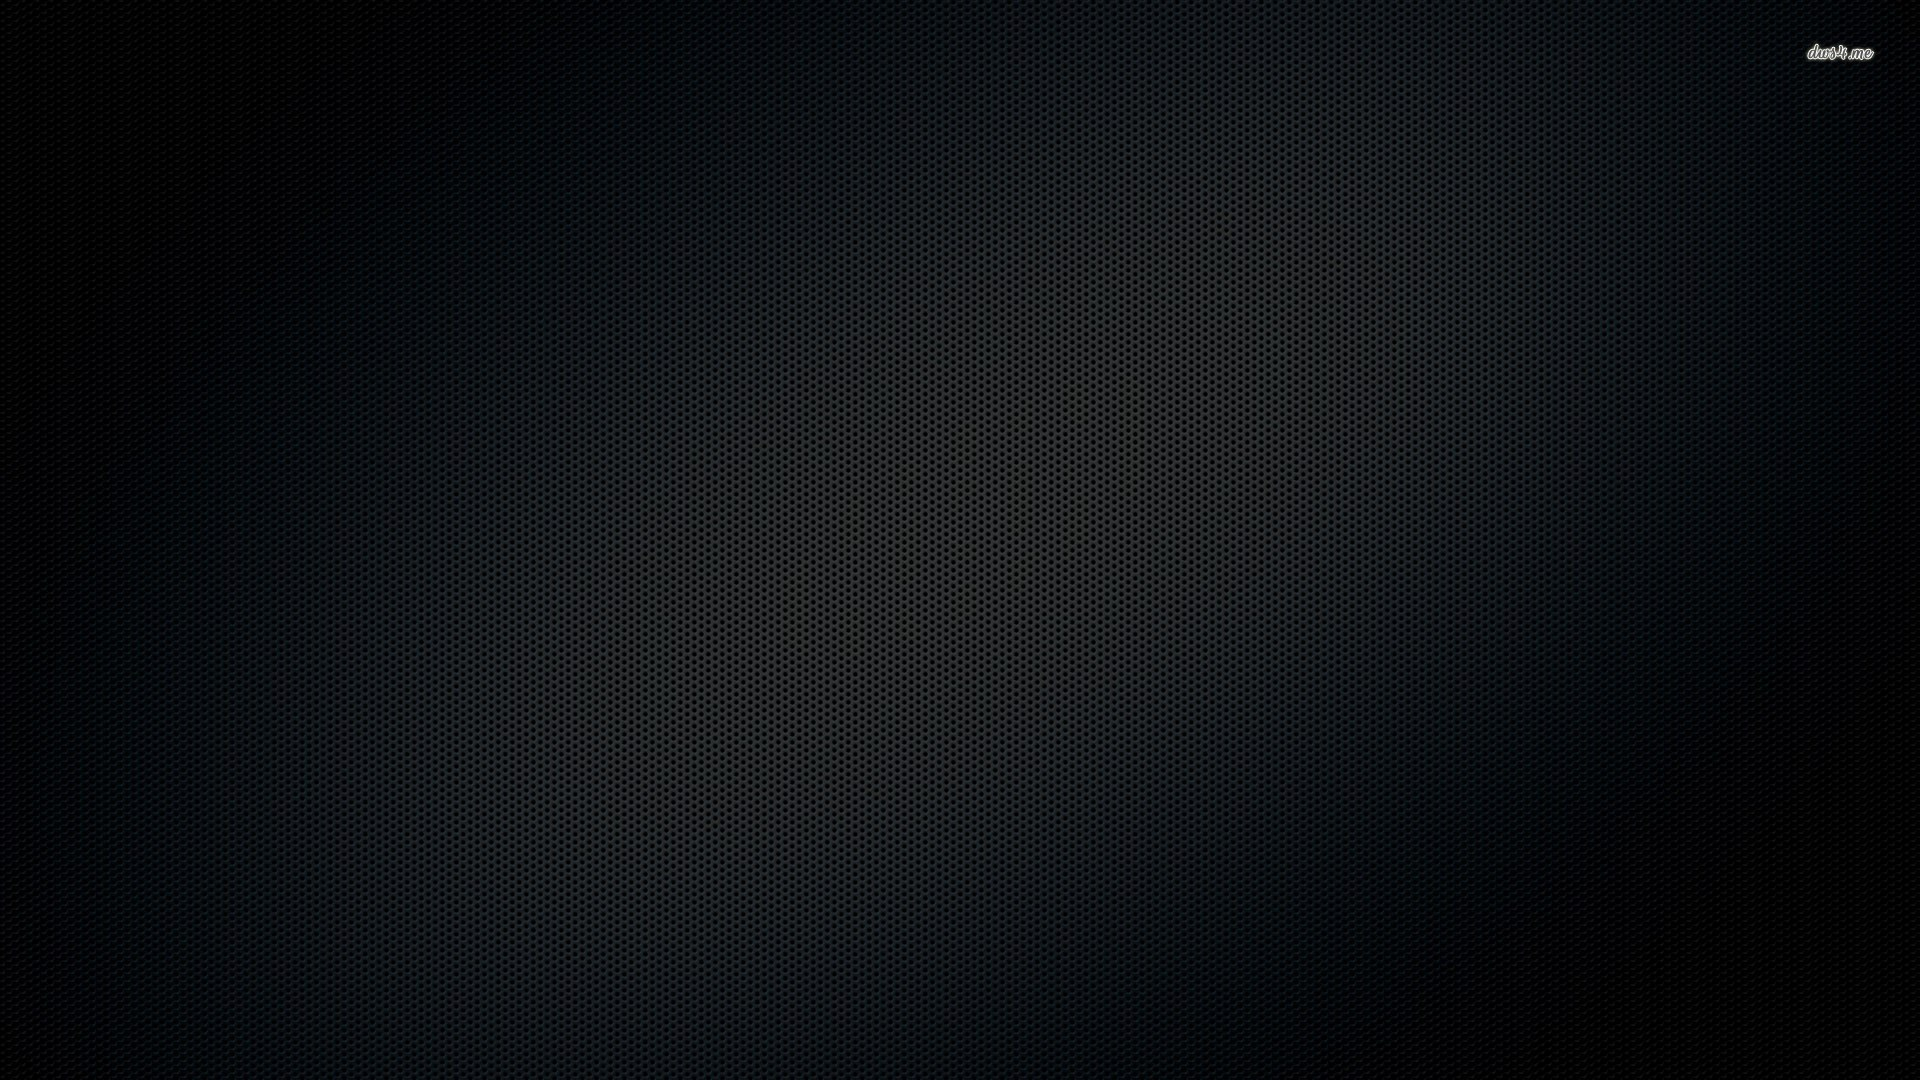 Black-Texture-Desktop-High-Resolution-1920x1080-px-KB-wallpaper-wp3403328